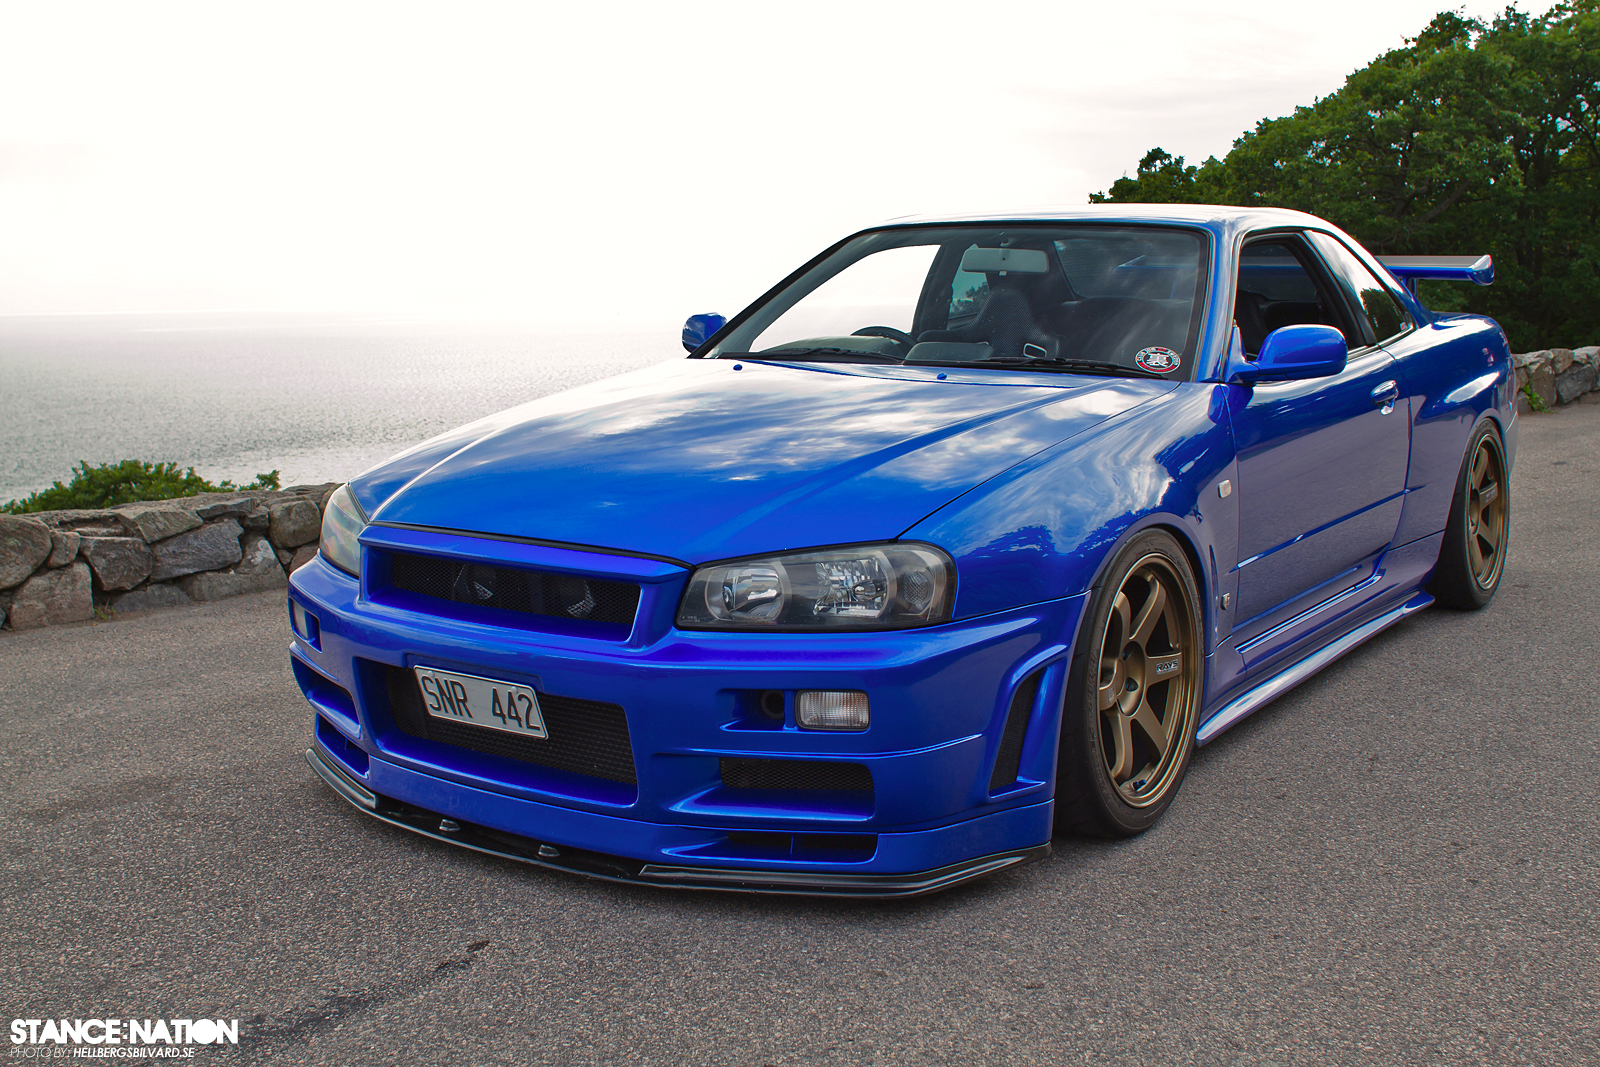 Blue Nissan Skyline R34 For Sale | Autos Weblog